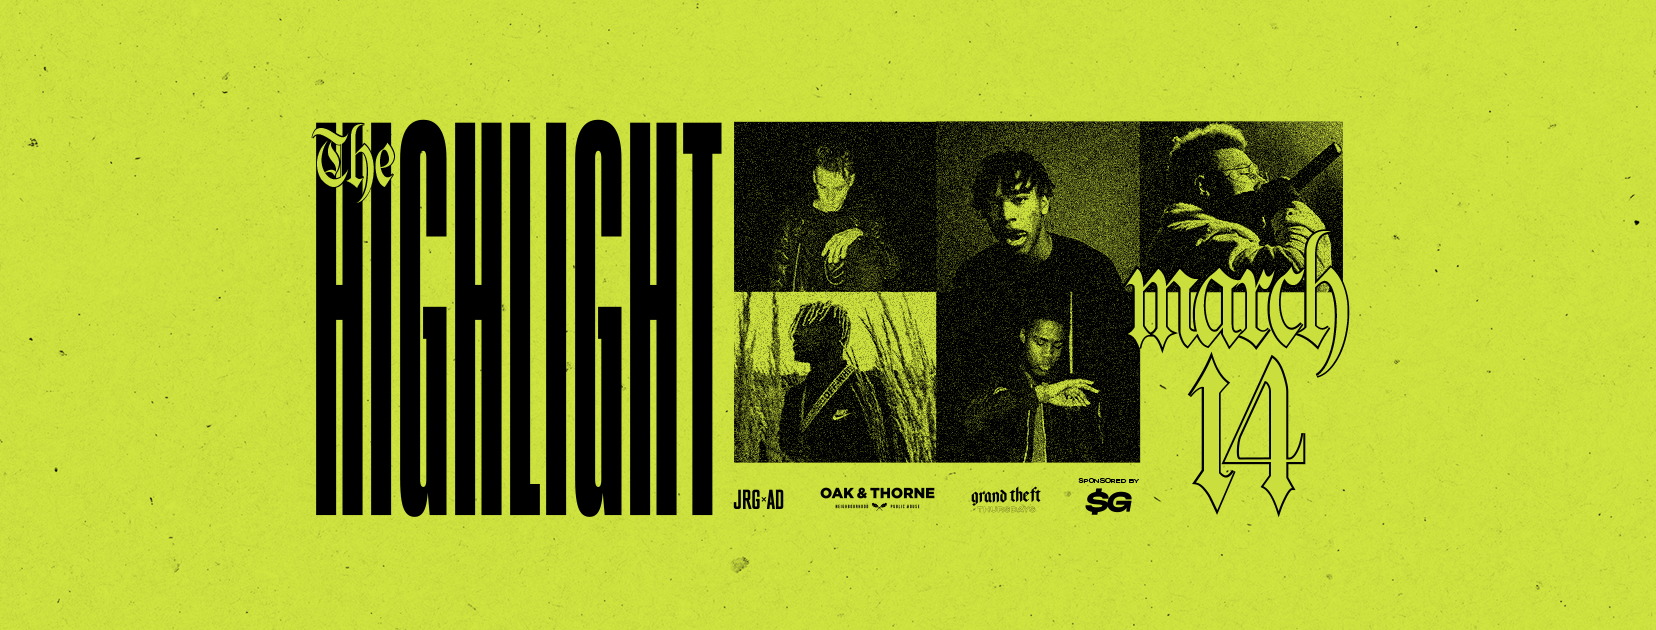 The Highlight Show